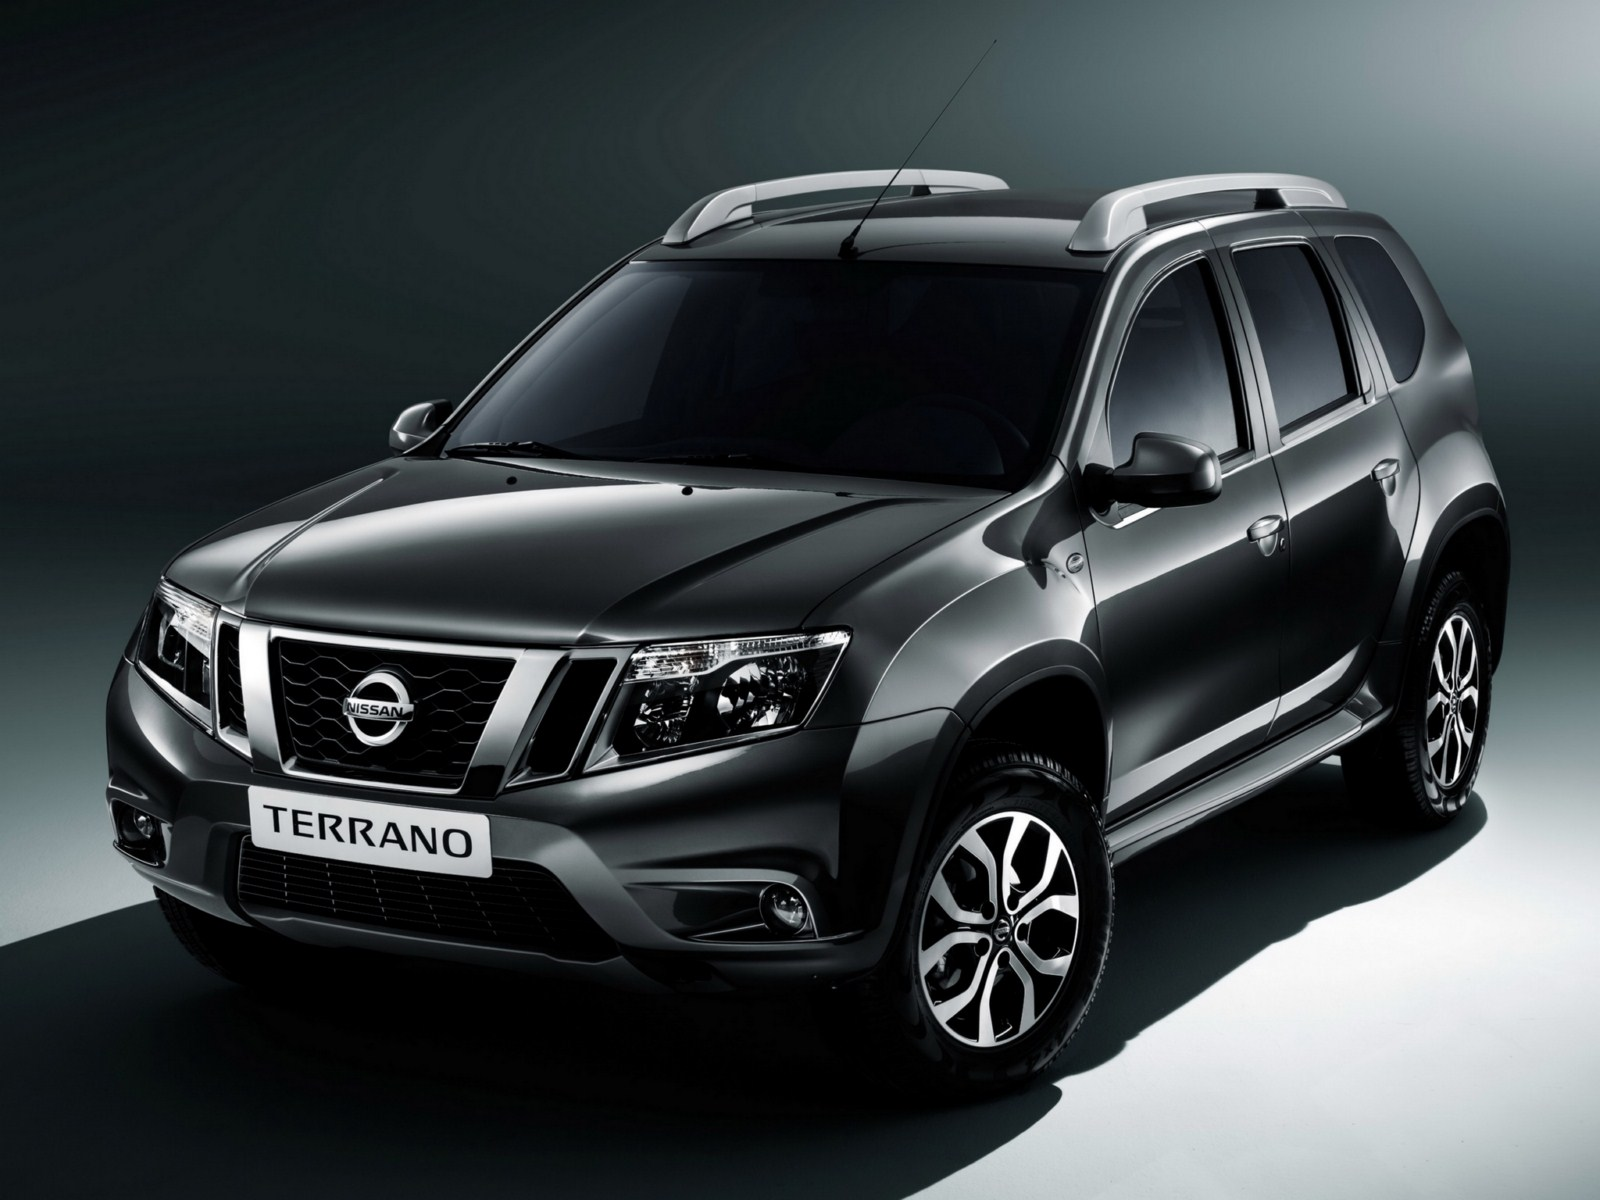 Russia - Nissan Terrano prices announced, bookings open